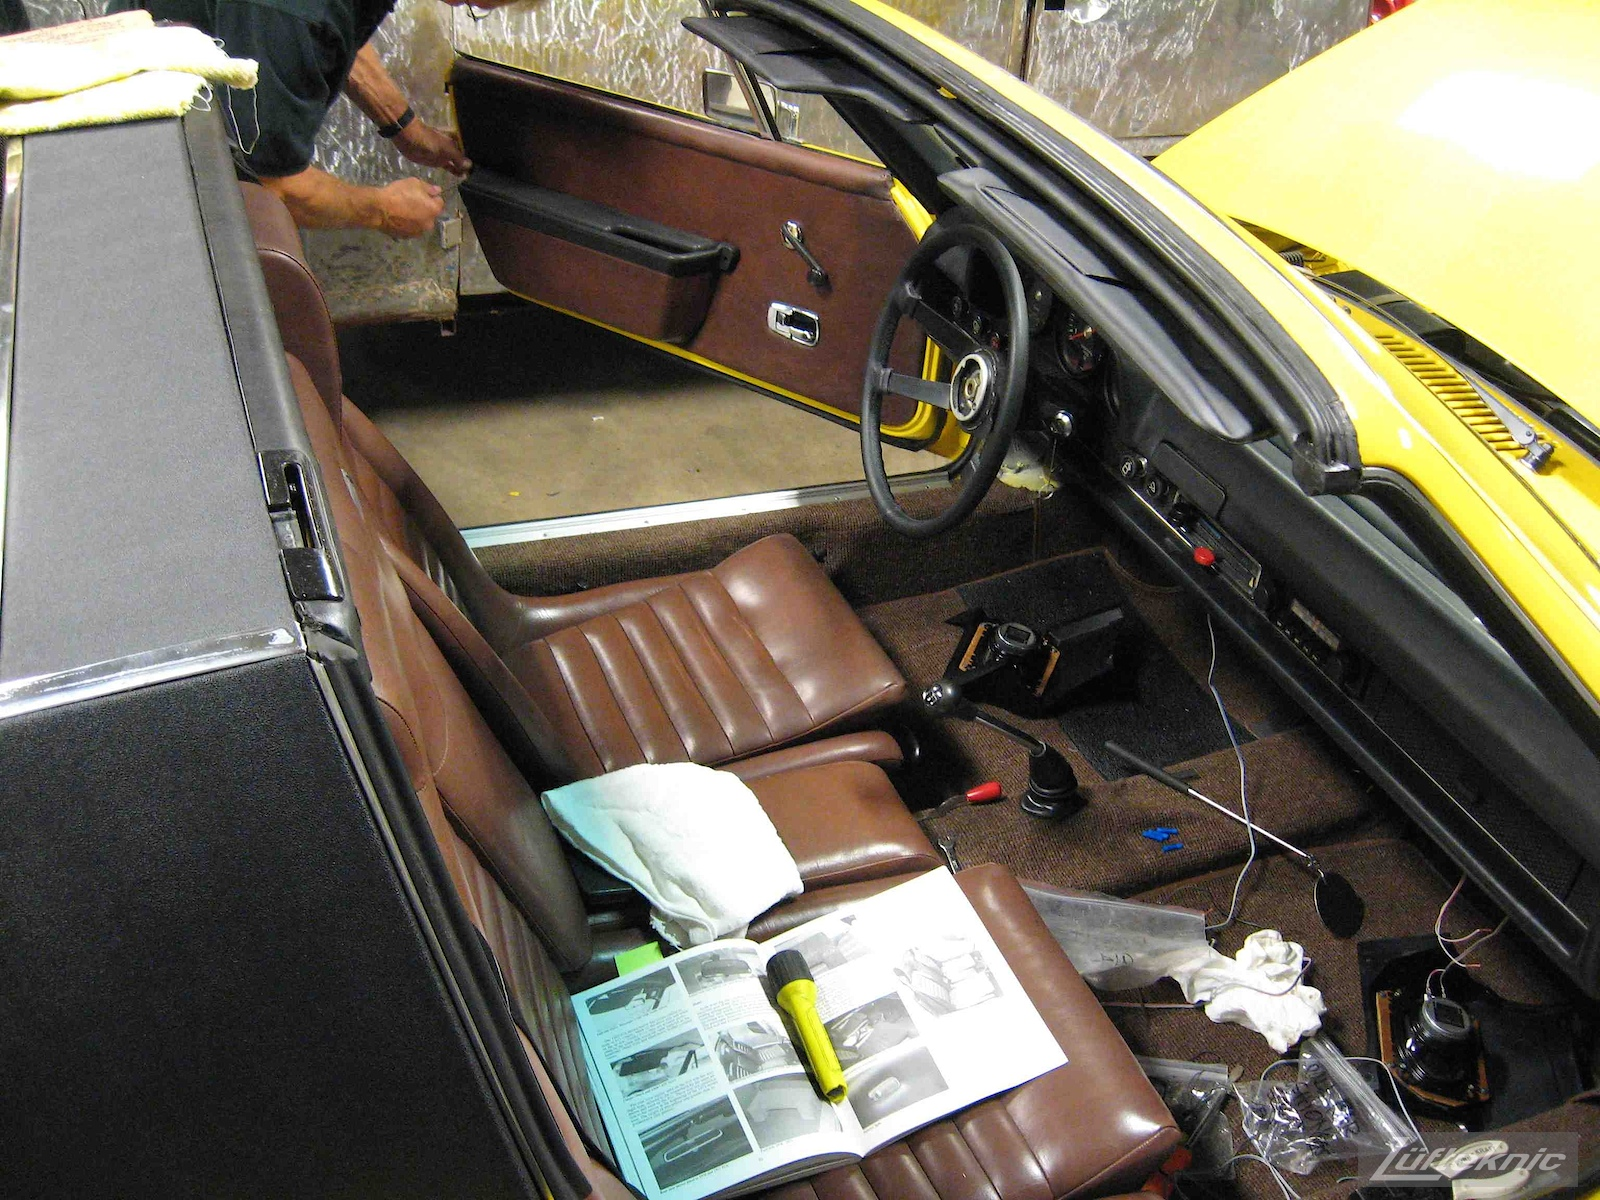 Brown original interior installed into a restored yellow Porsche 914 at Lufteknic.